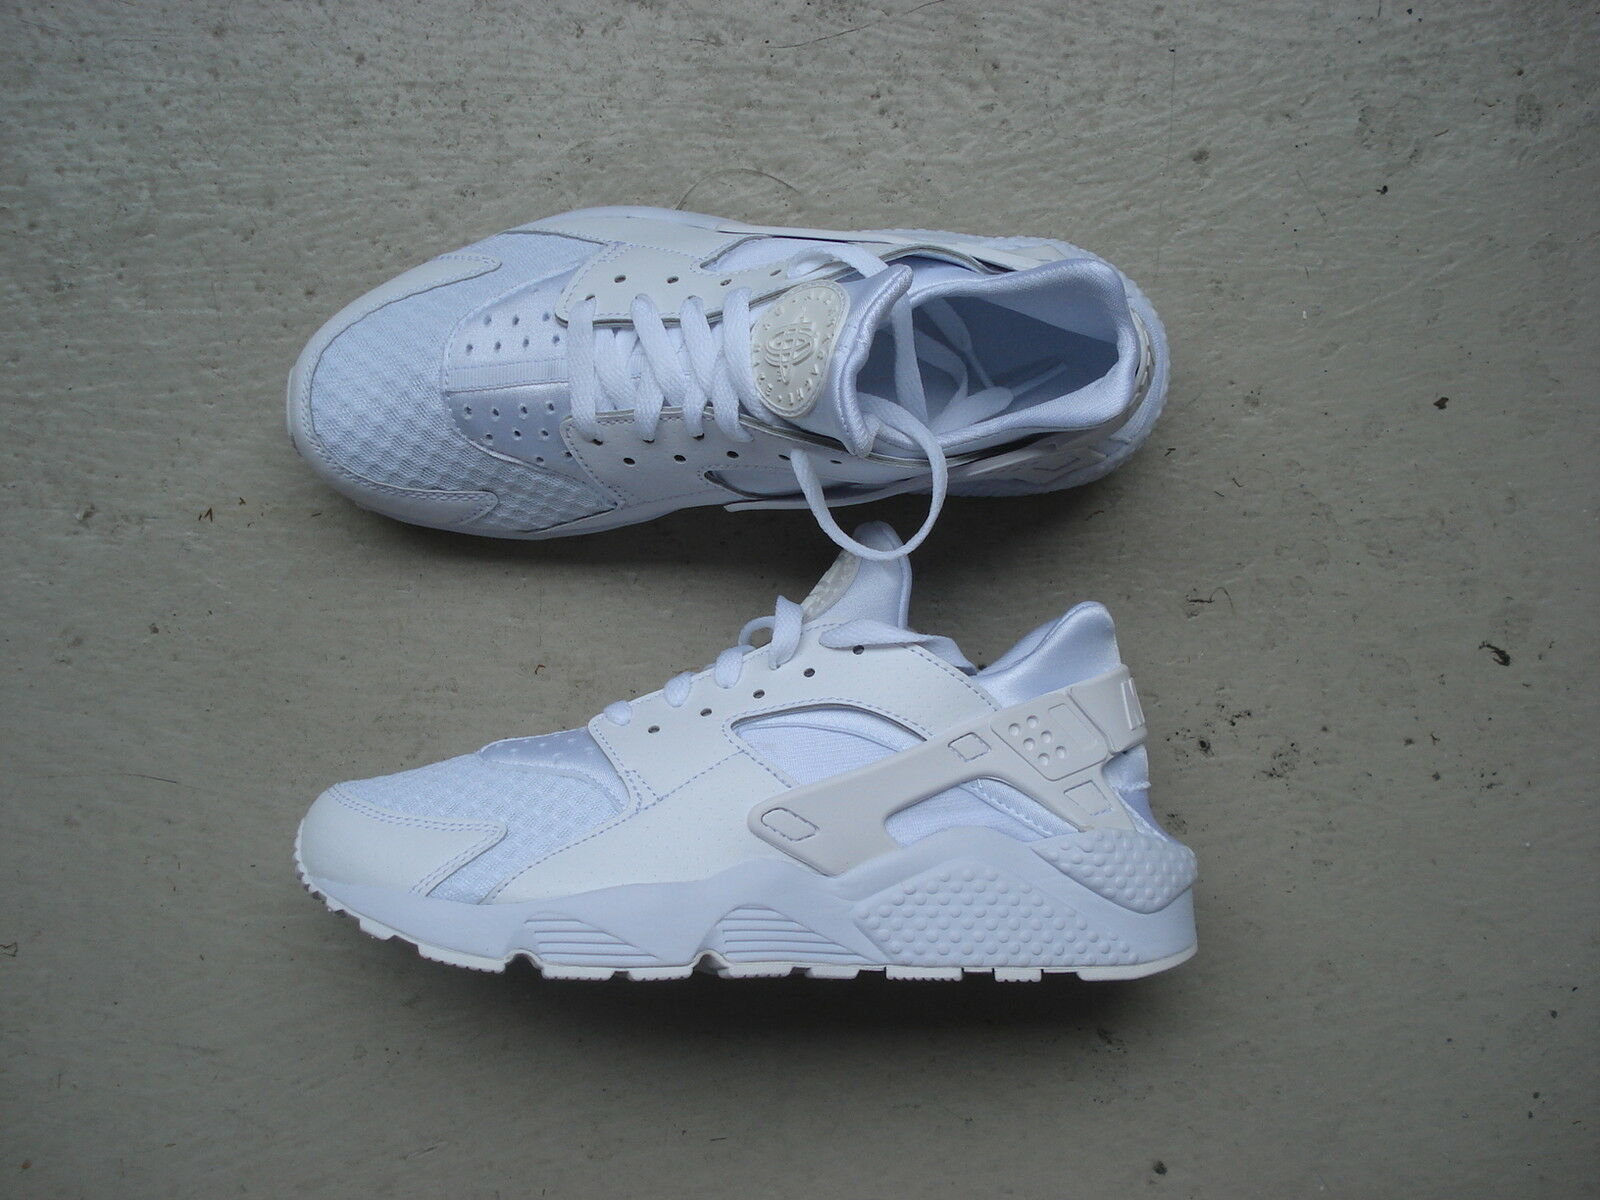 Nike Air Huarache 44.5 White White-Pure Platinum